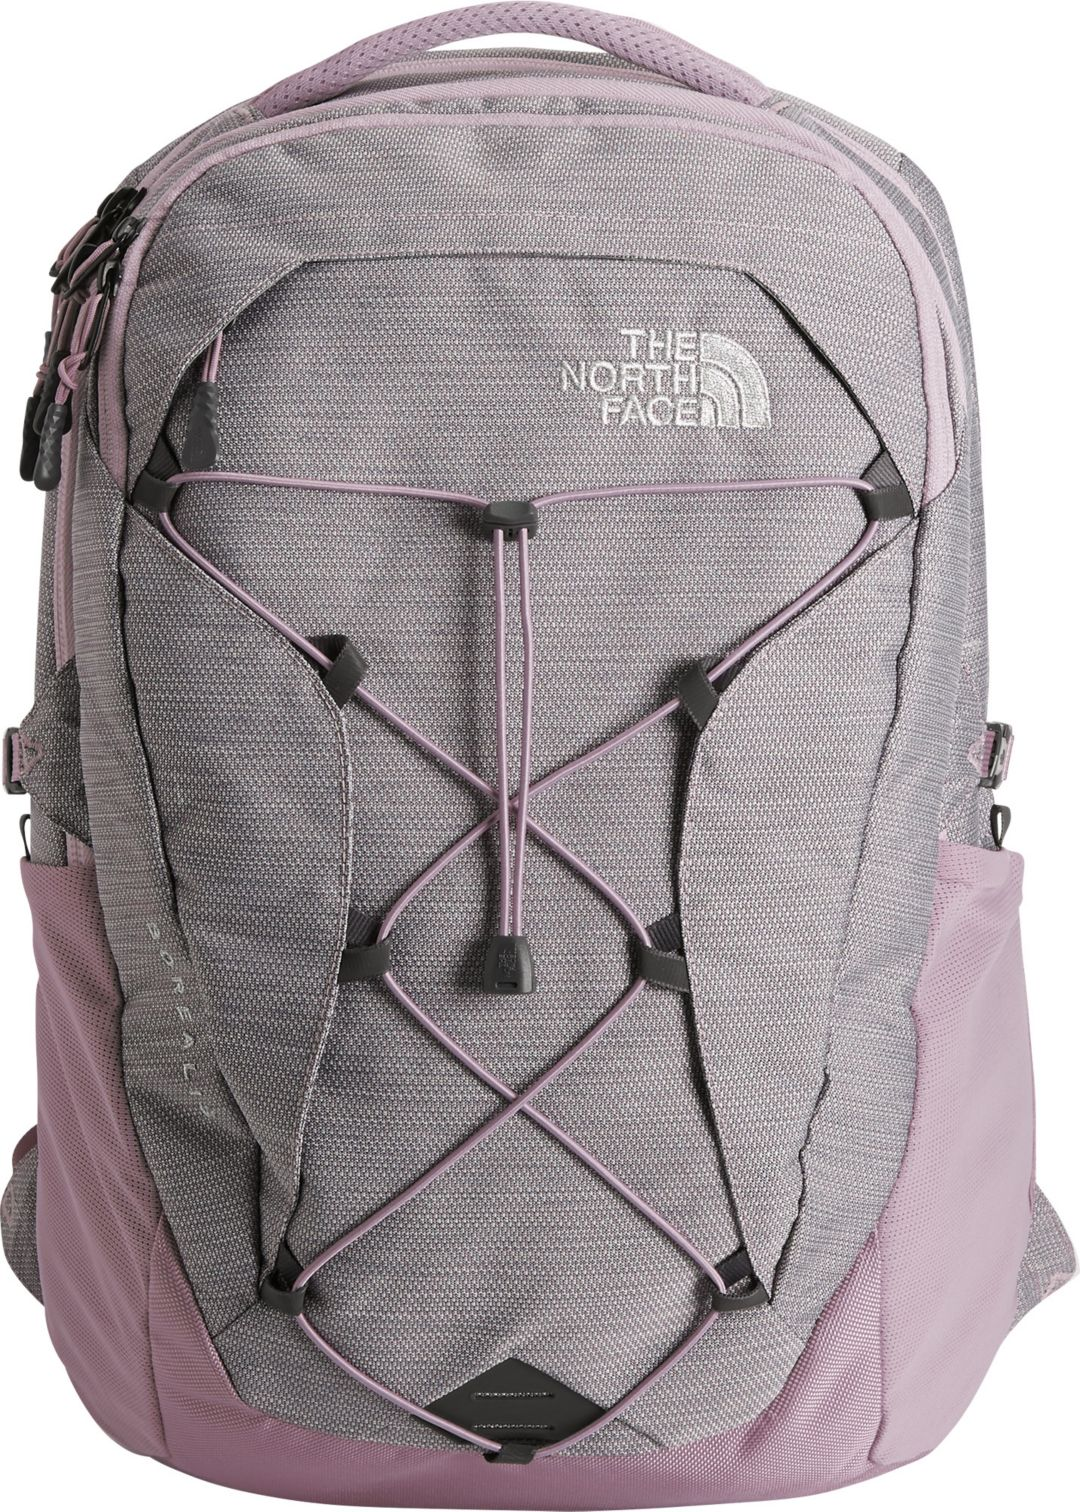 5d18fdd5d The North Face Women's Borealis Luxe Backpack